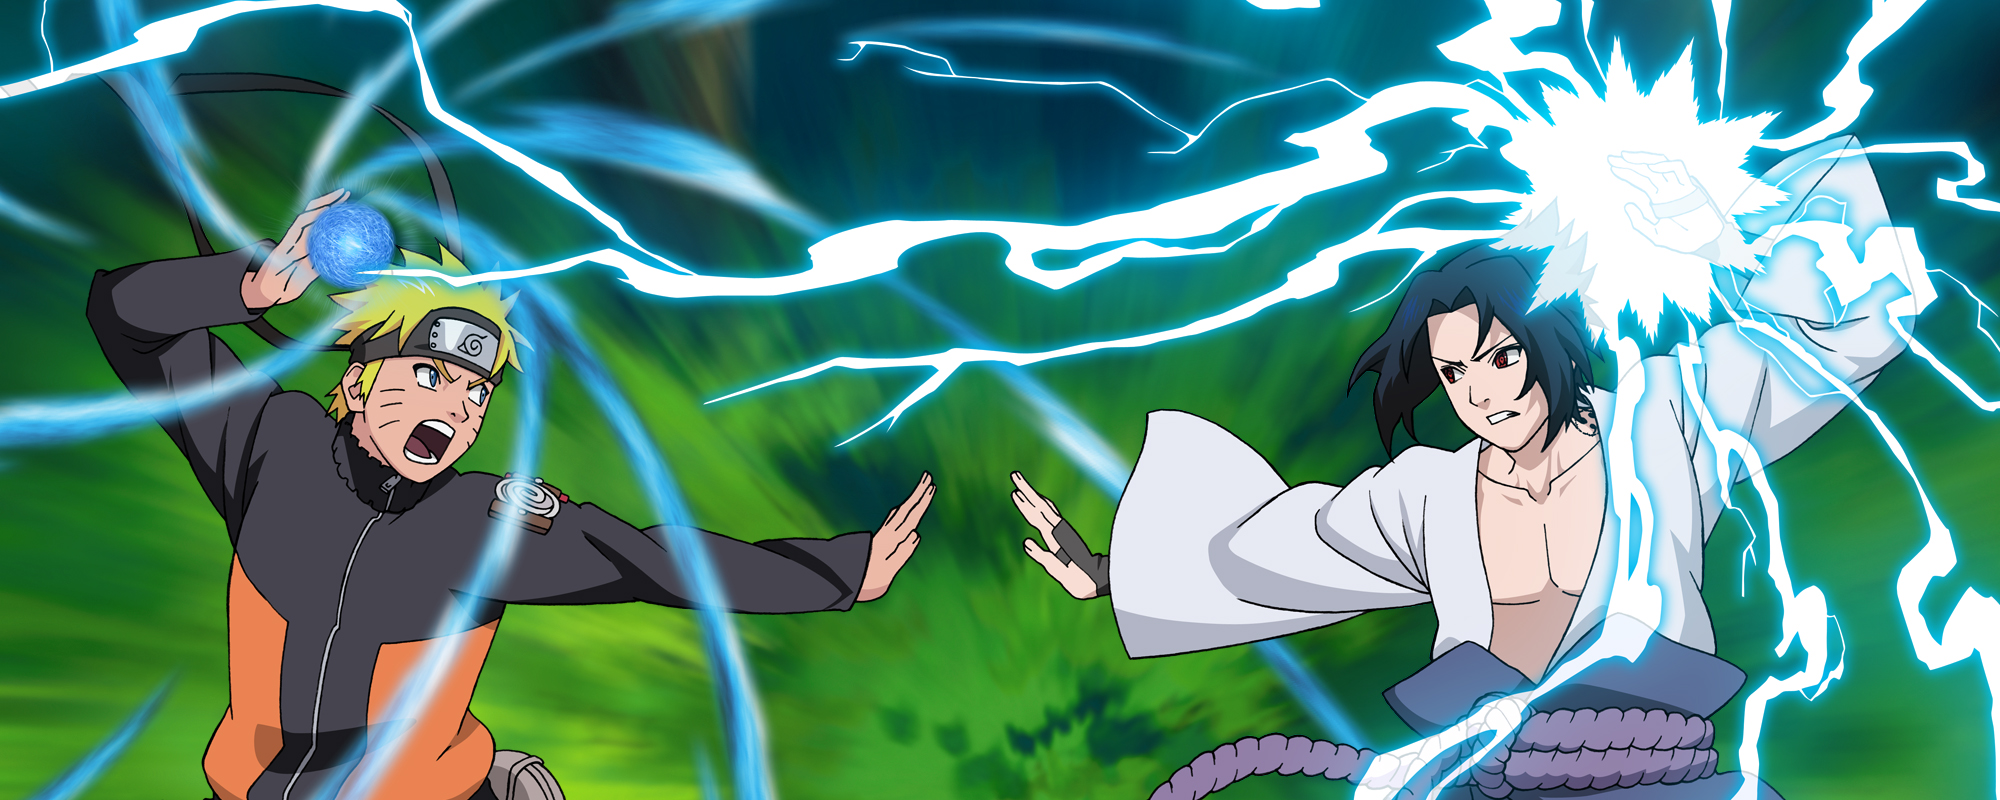 Naruto and Sasuke Stand Off with Rasengan and Chidori